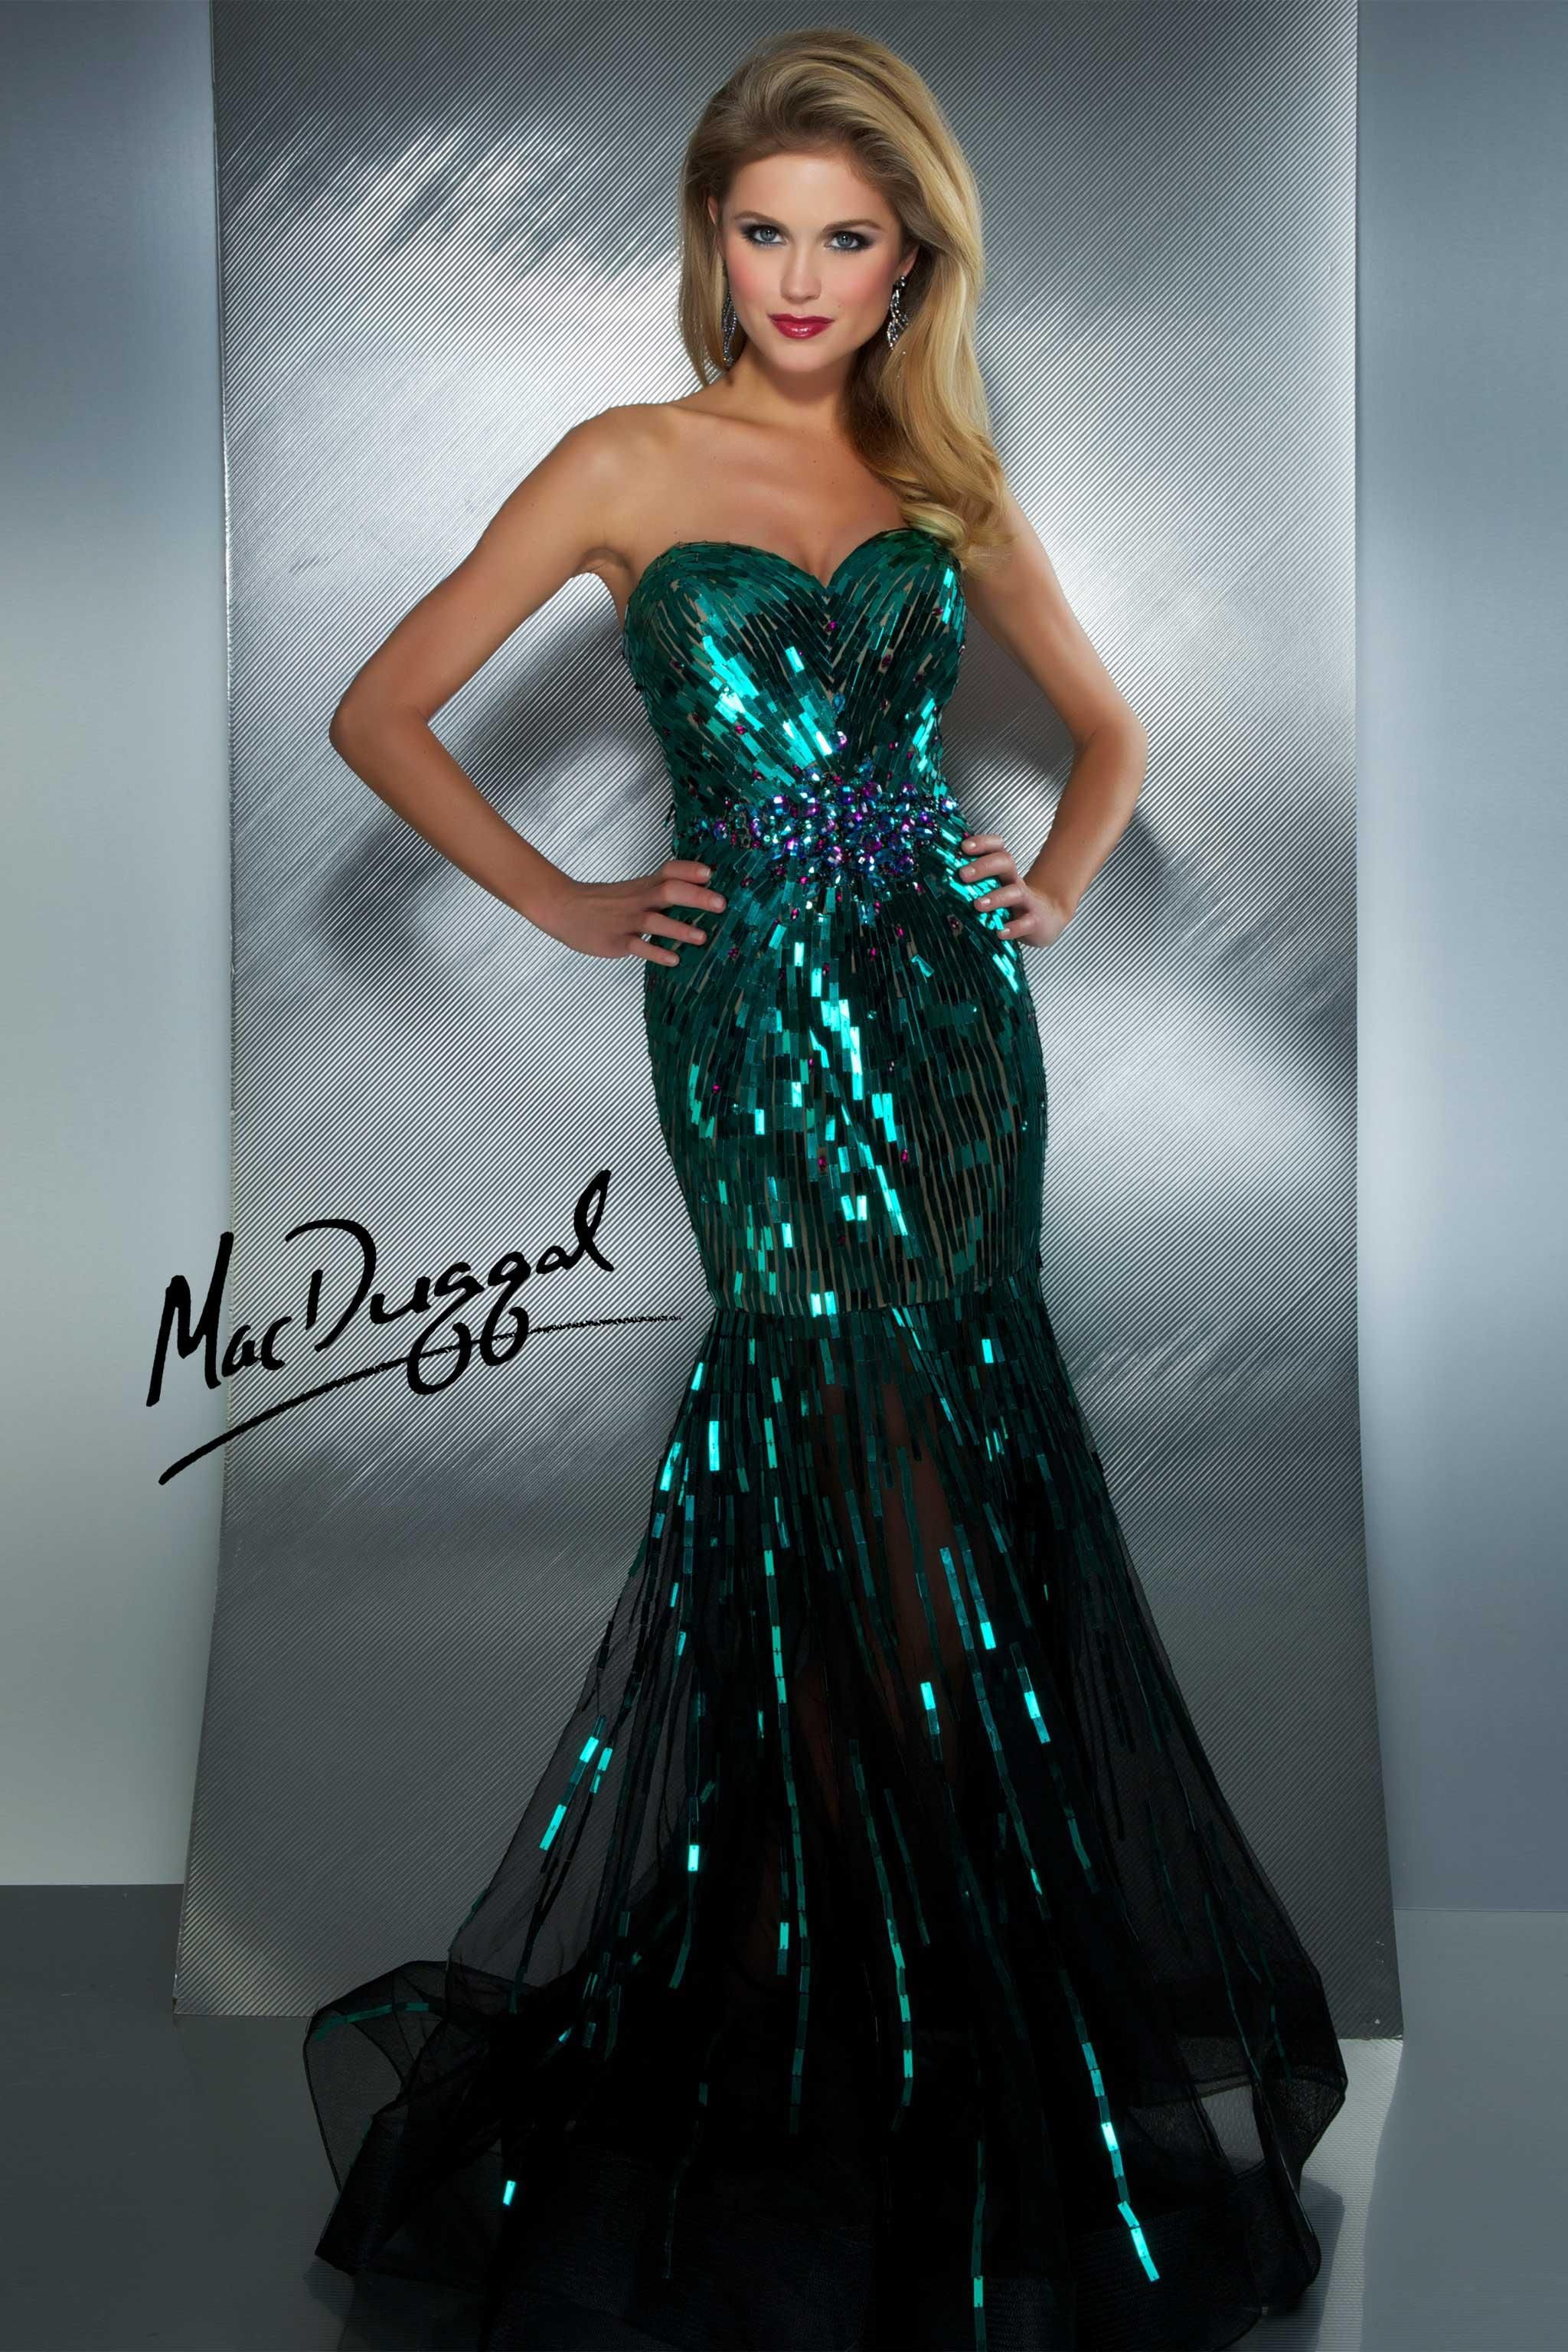 Teal Metallic Sequin Mermaid Prom Dress maybe a diff color | dresses ...